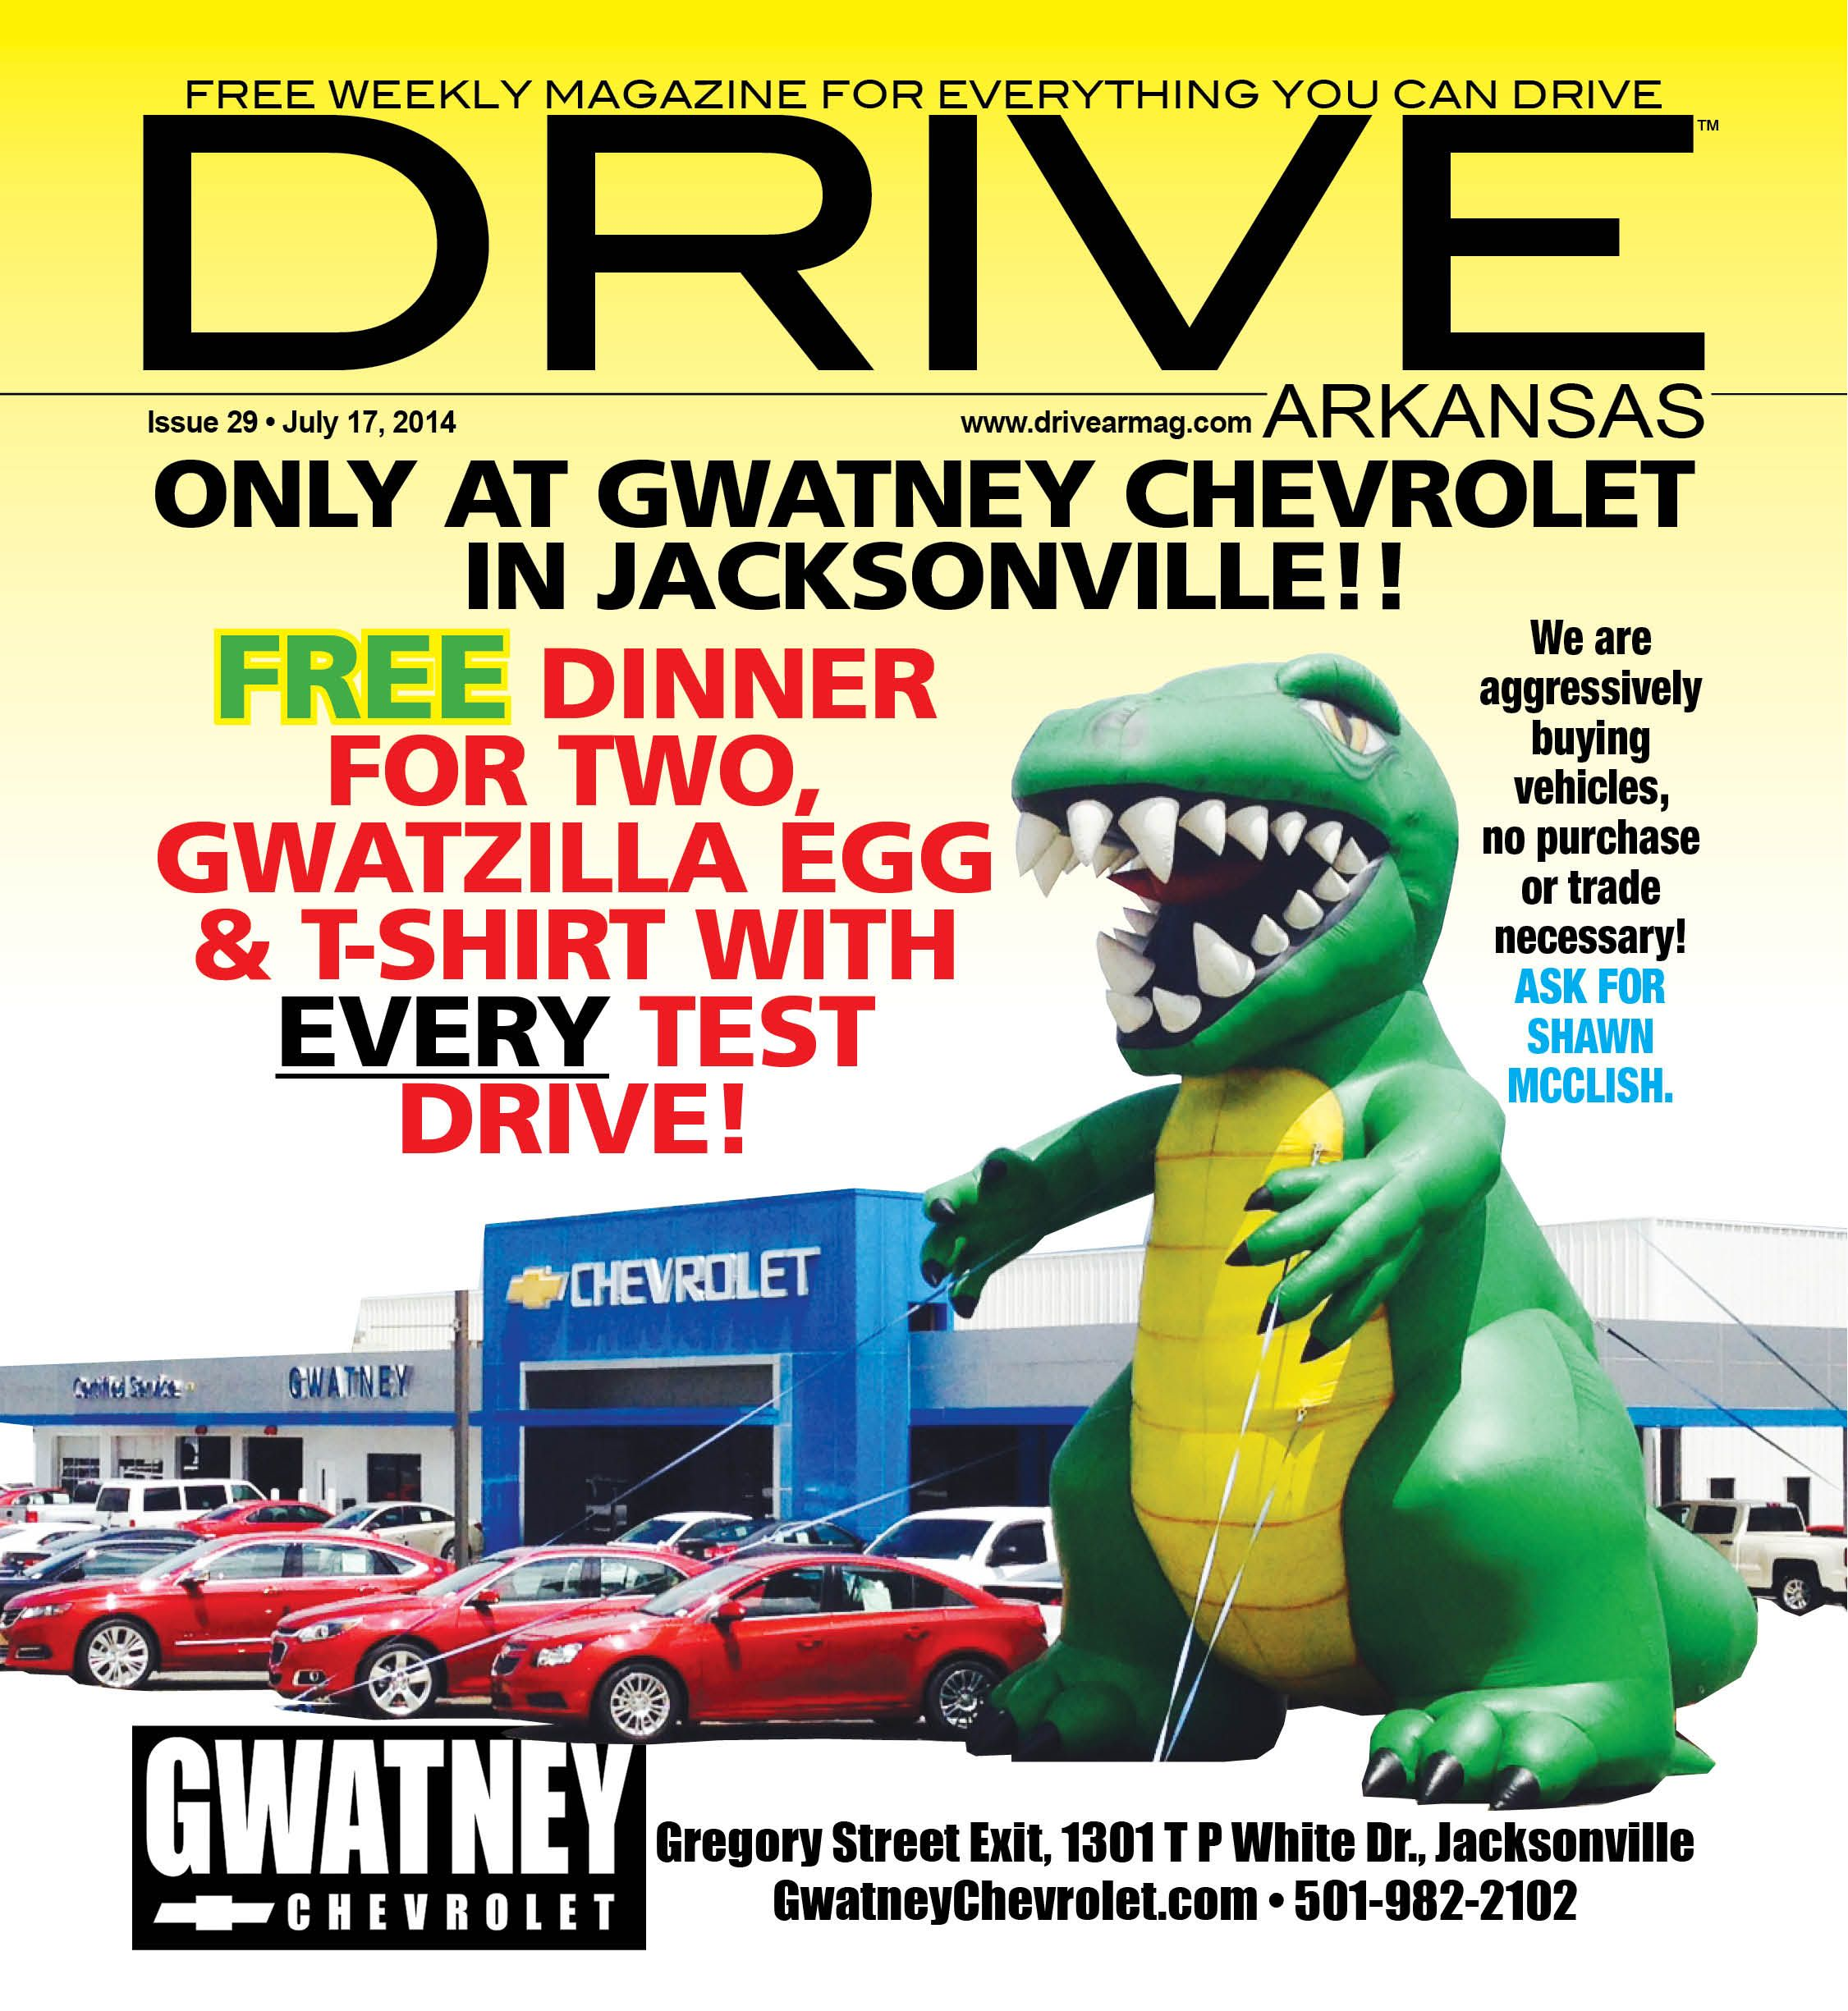 July 17 2014 Drivearkansas Hbakermedia Arkansas Driving Cover